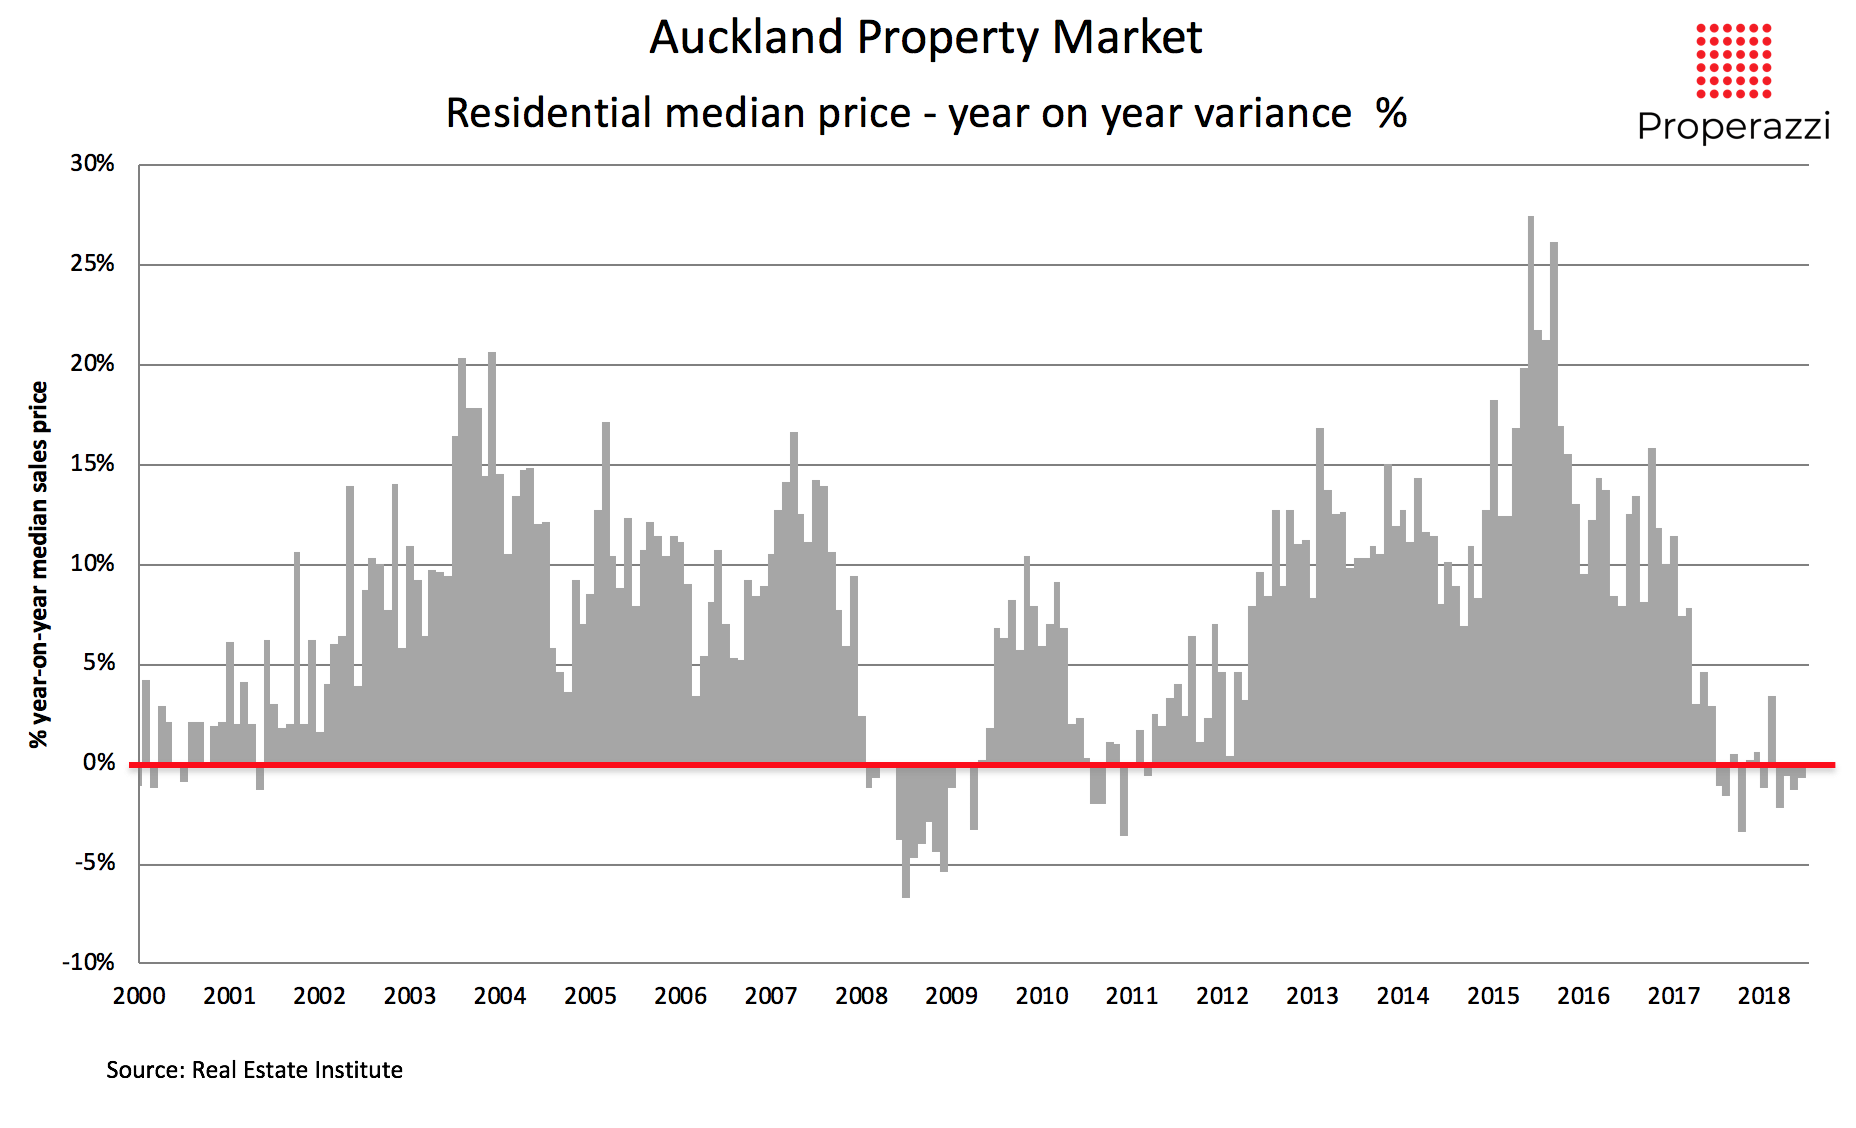 Auckland median price movements 2000 to 2018